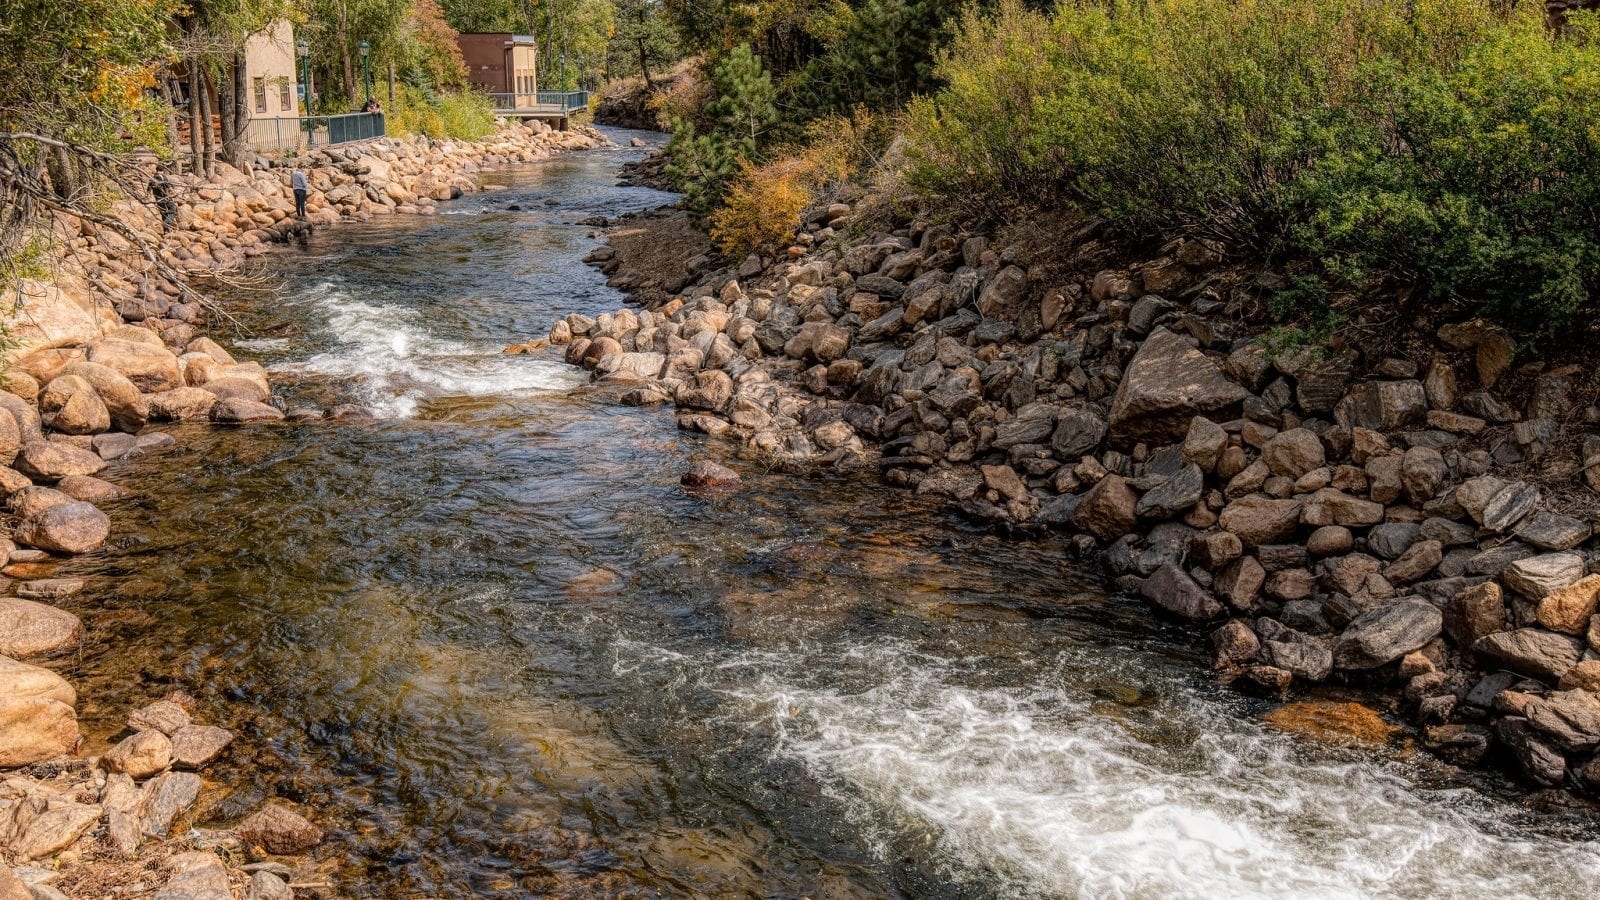 Image of the Big Thompson River flowing near downtown Estes Parks